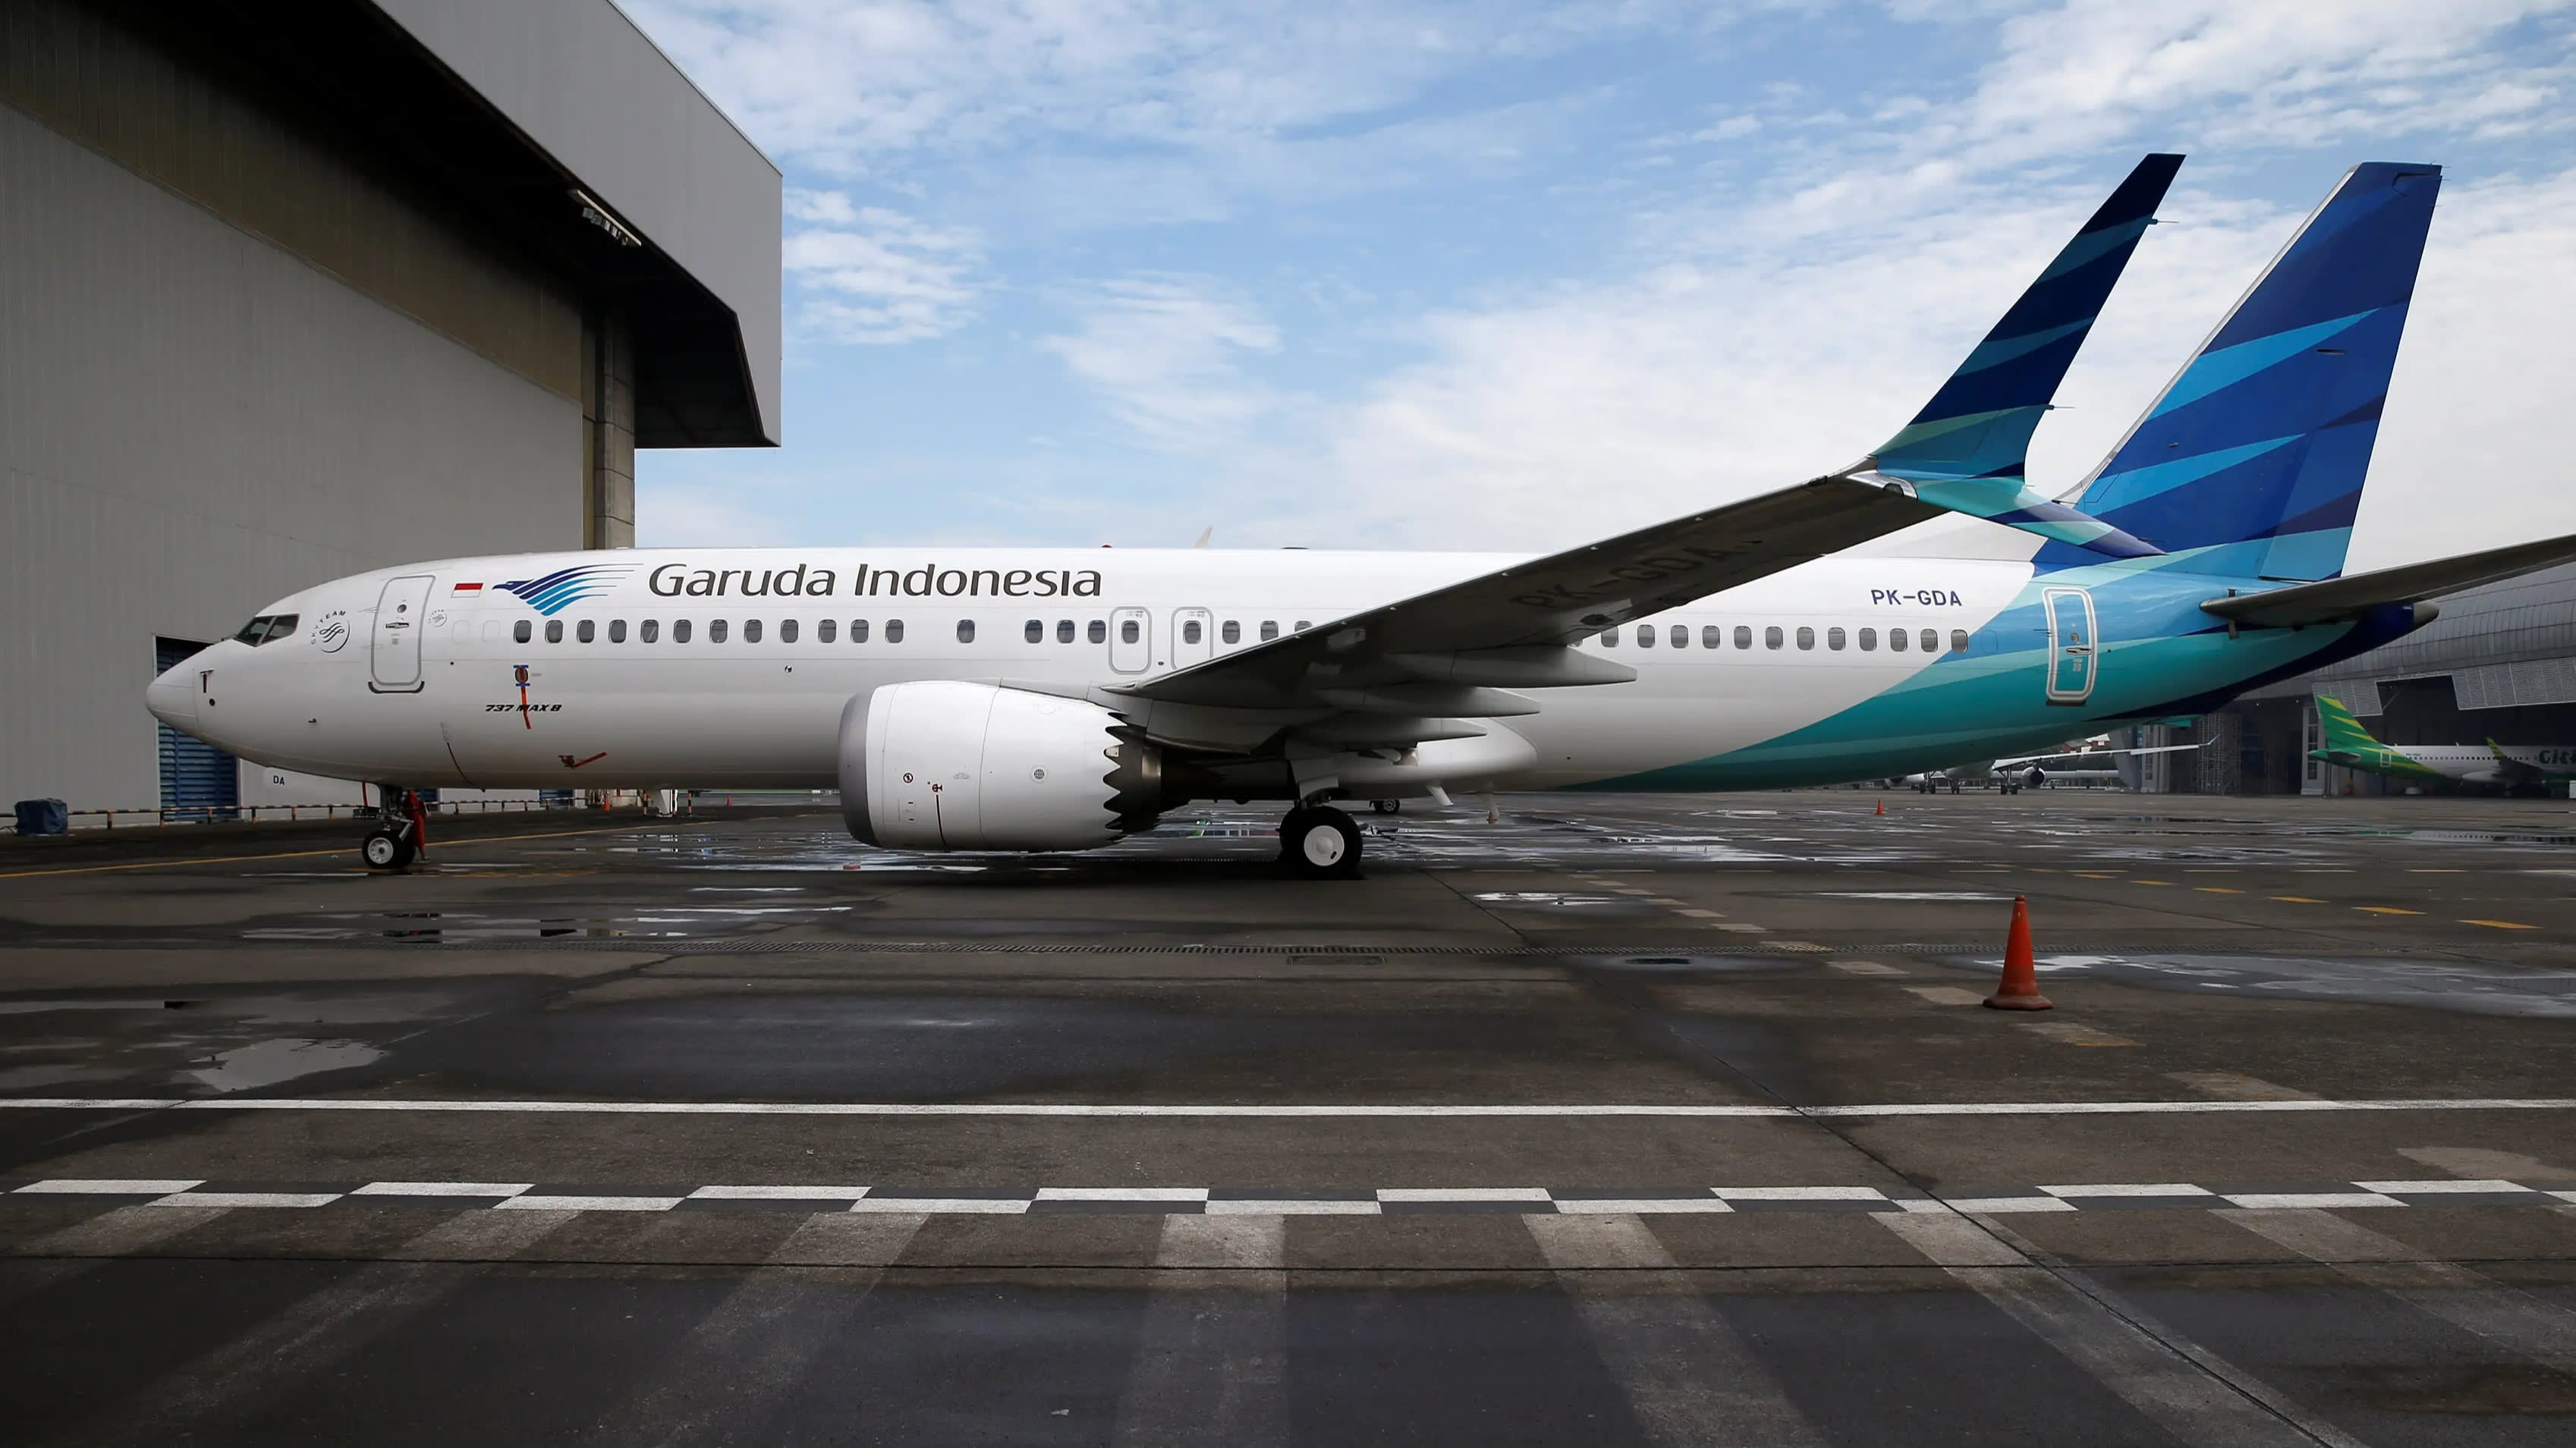 Japan bans Boeing 737 Max planes - Nikkei Asian Review